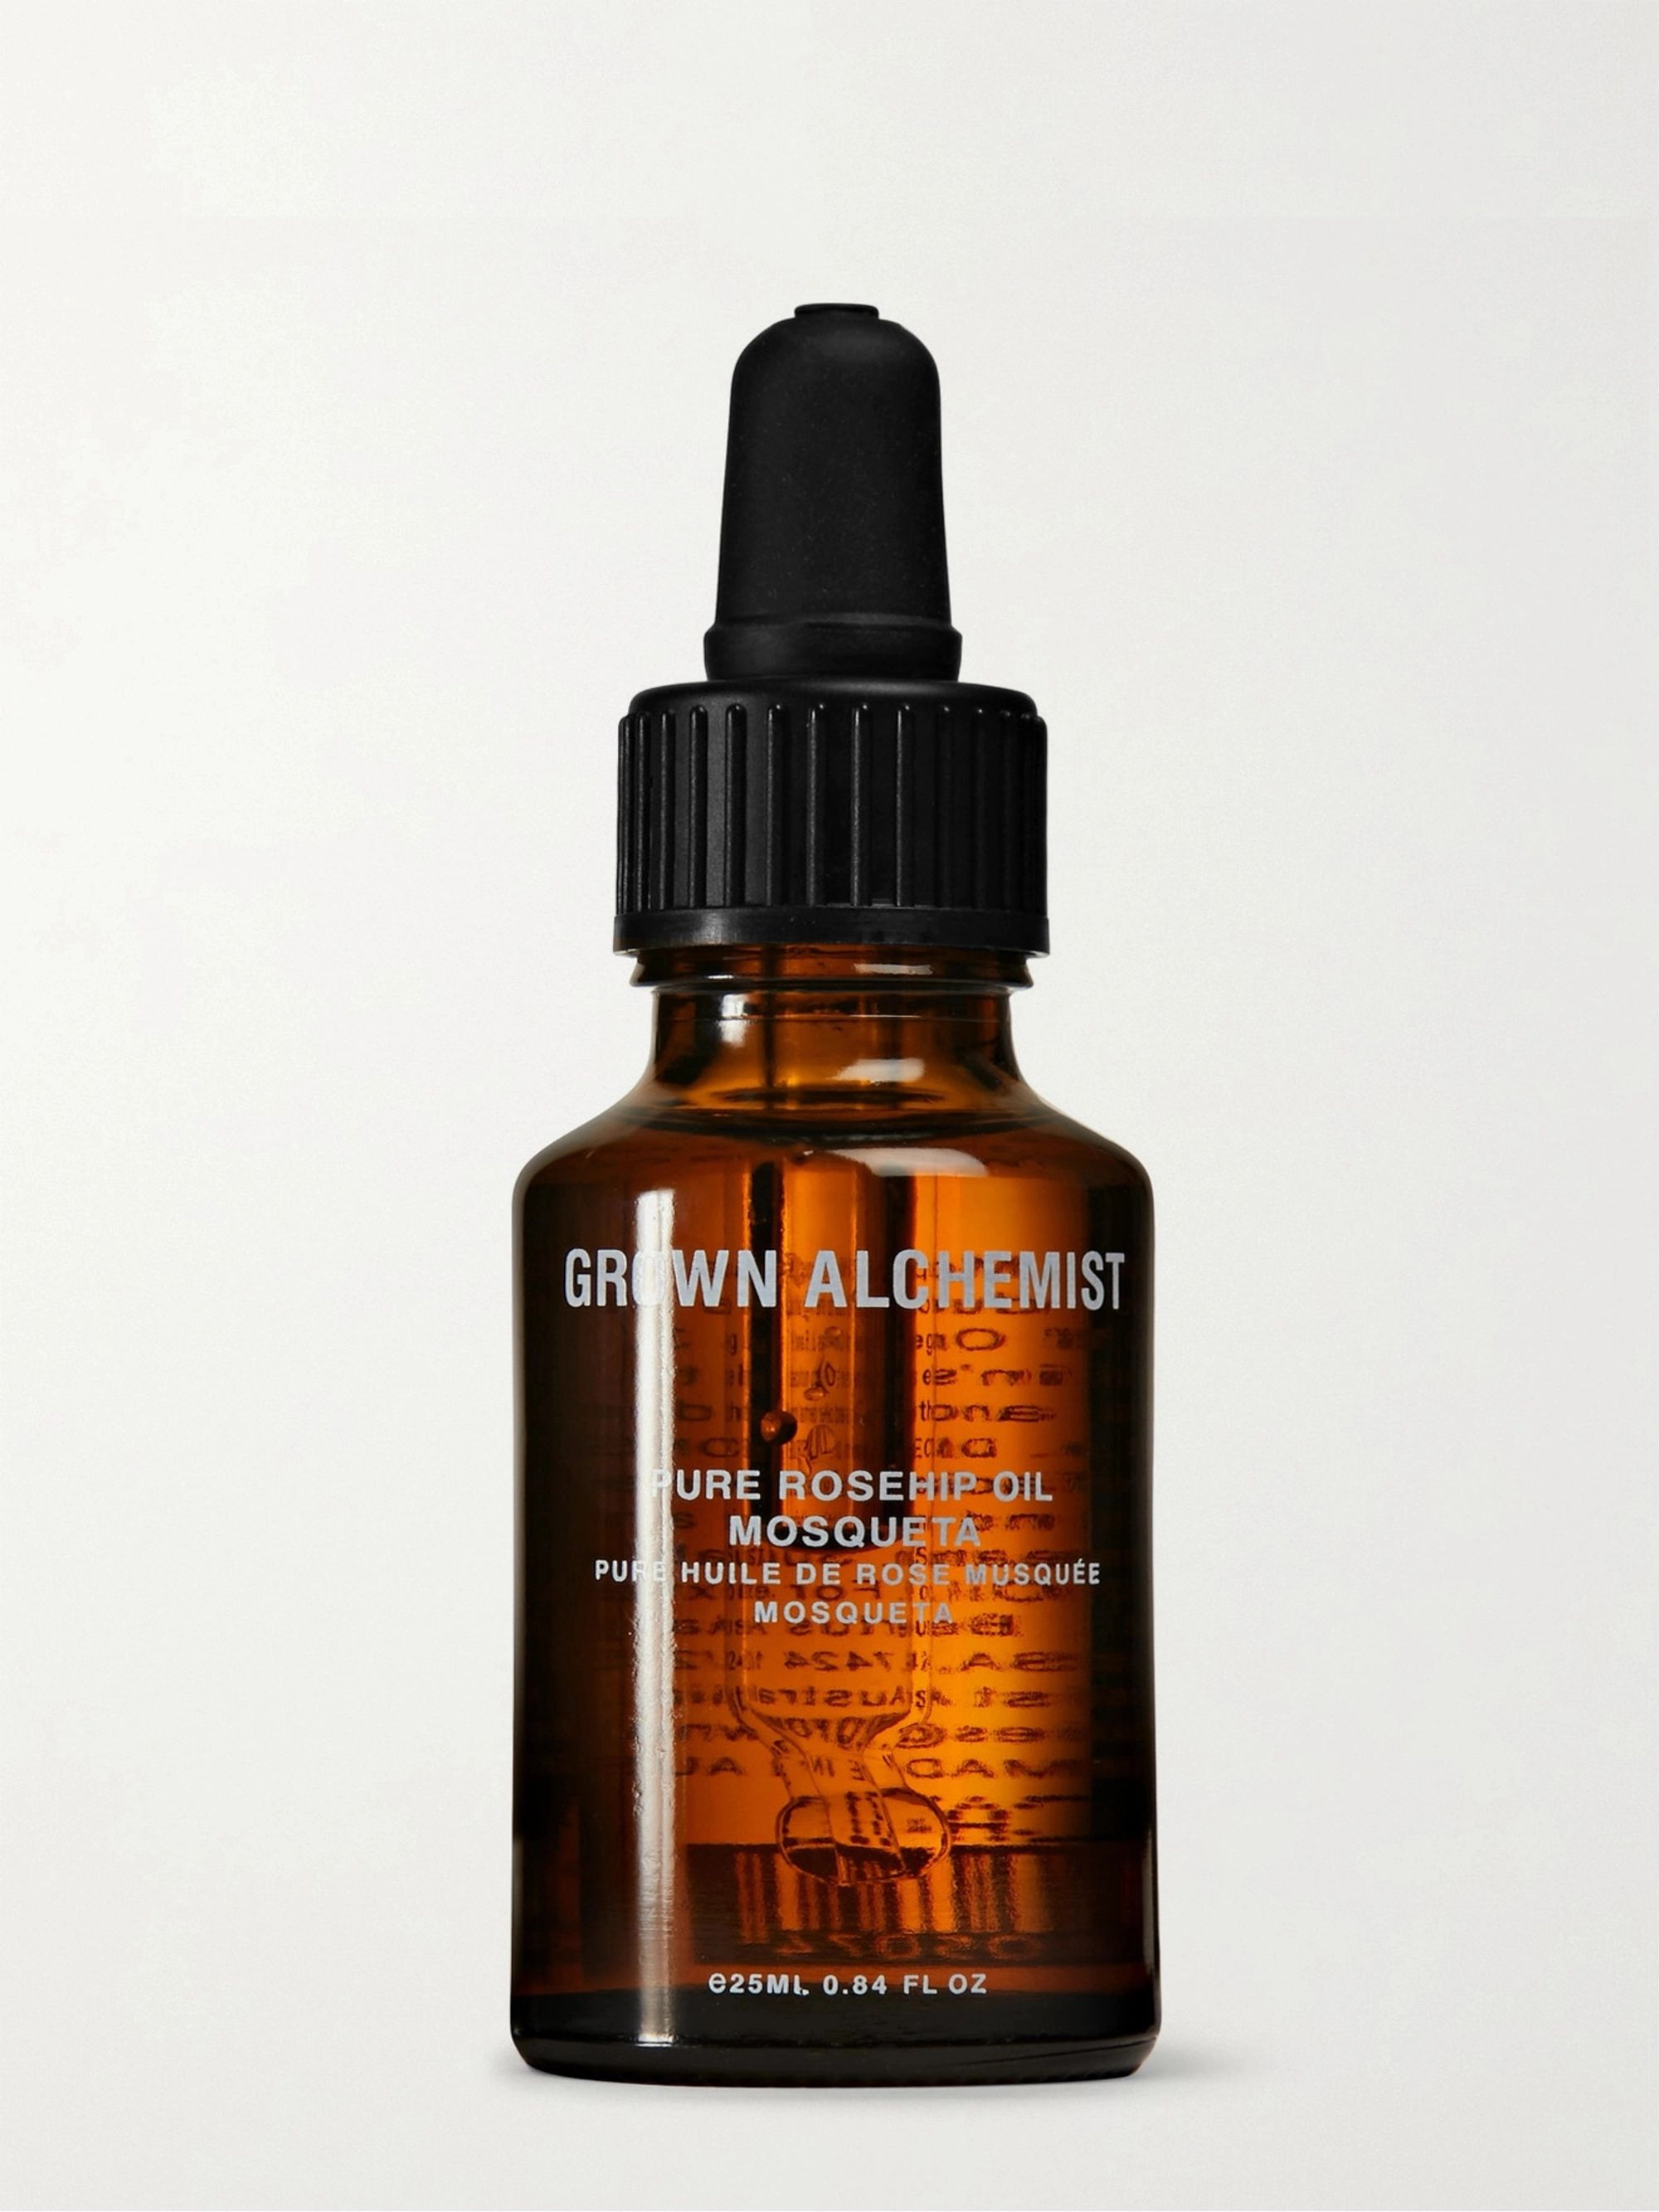 Grown Alchemist Pure Rosehip Oil - Rosa Mosqueta, 25ml